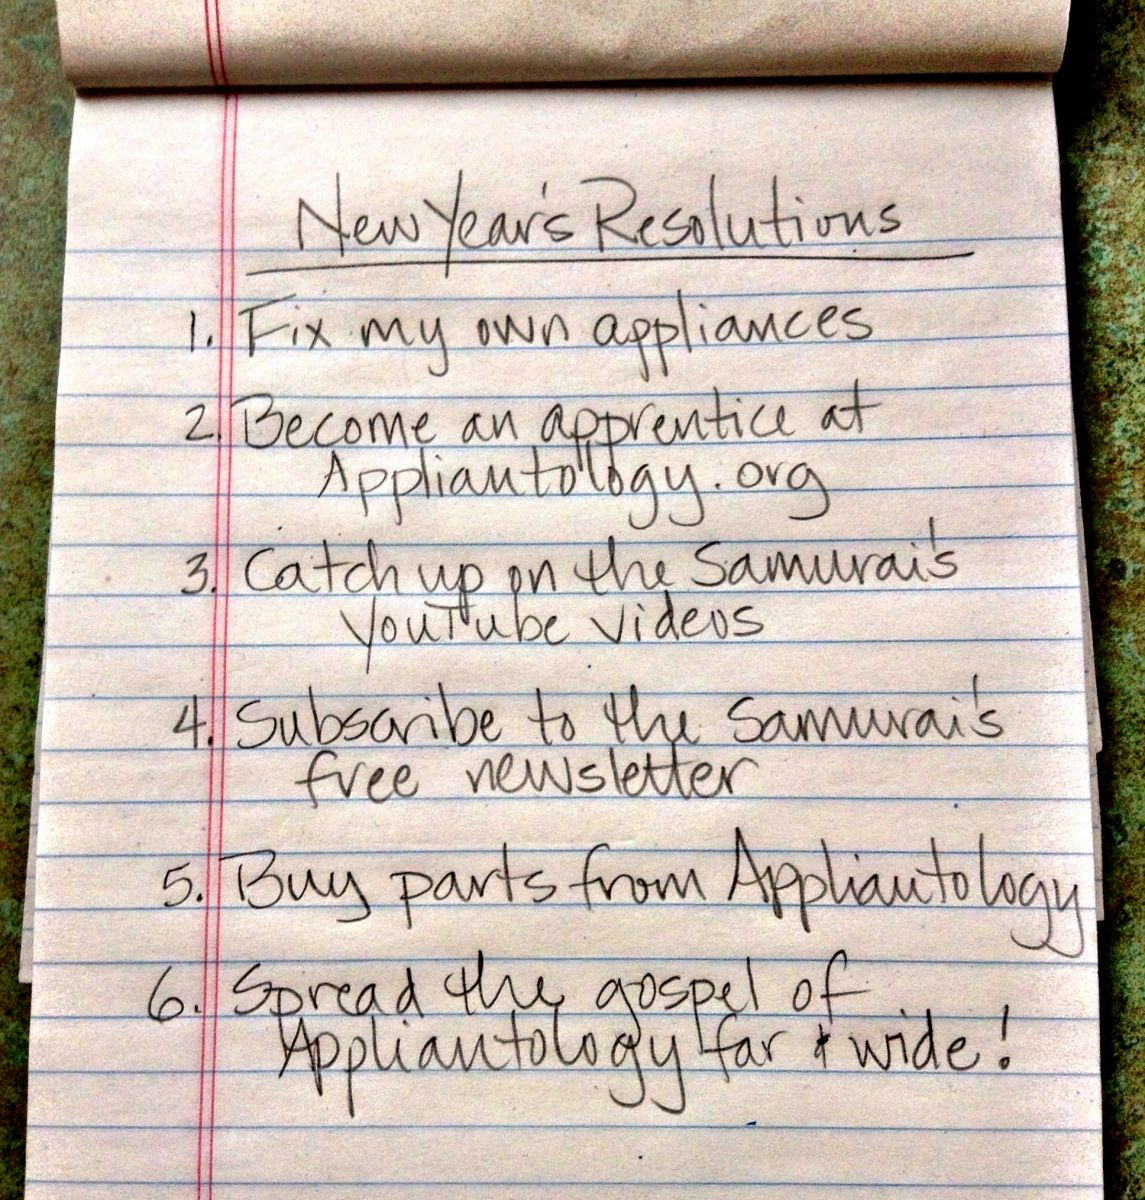 New Years Resolutions for 2014